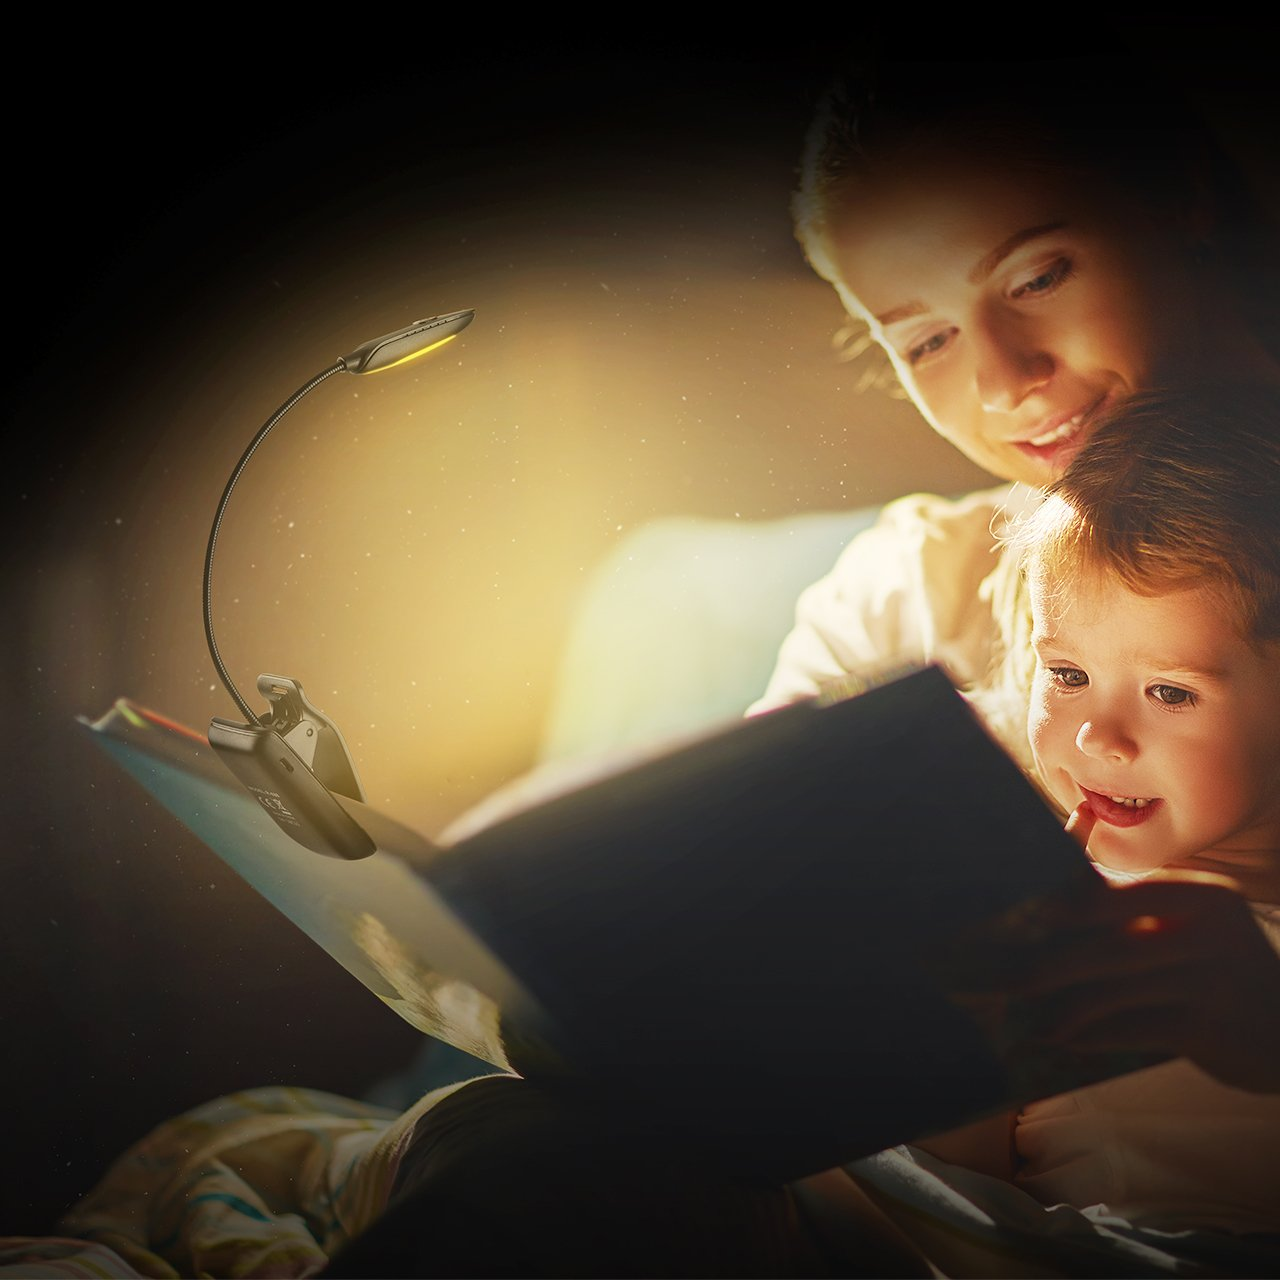 TopElek Reading Light, 7 LED Book Light with 9-Level Warm/Cool White Brightness, USB Rechargeable, Eye Care Lamp with Power Indicator, Perfect for Bookworms, Kids by TOPELEK (Image #4)